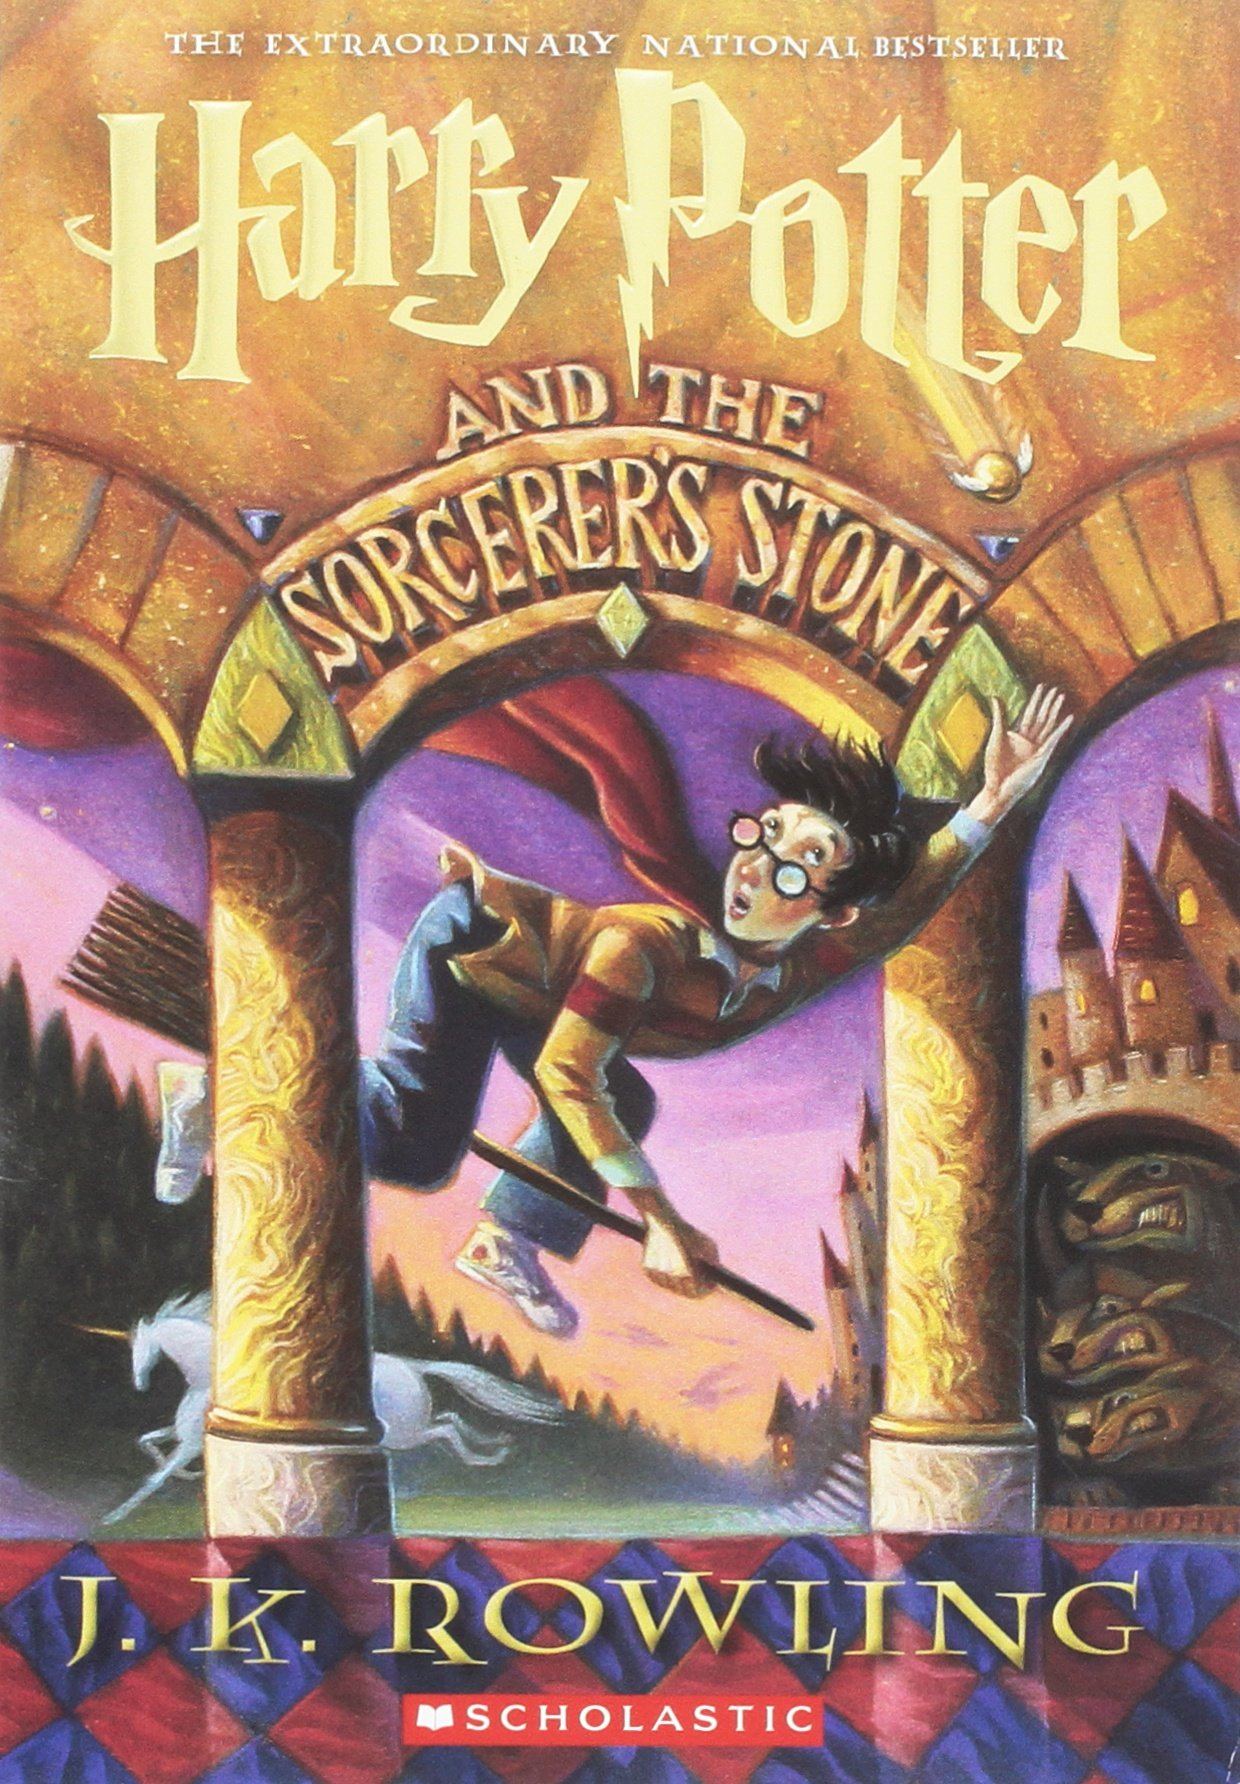 Harry Potter and the Sorcerer's Stone books i'm thankful for